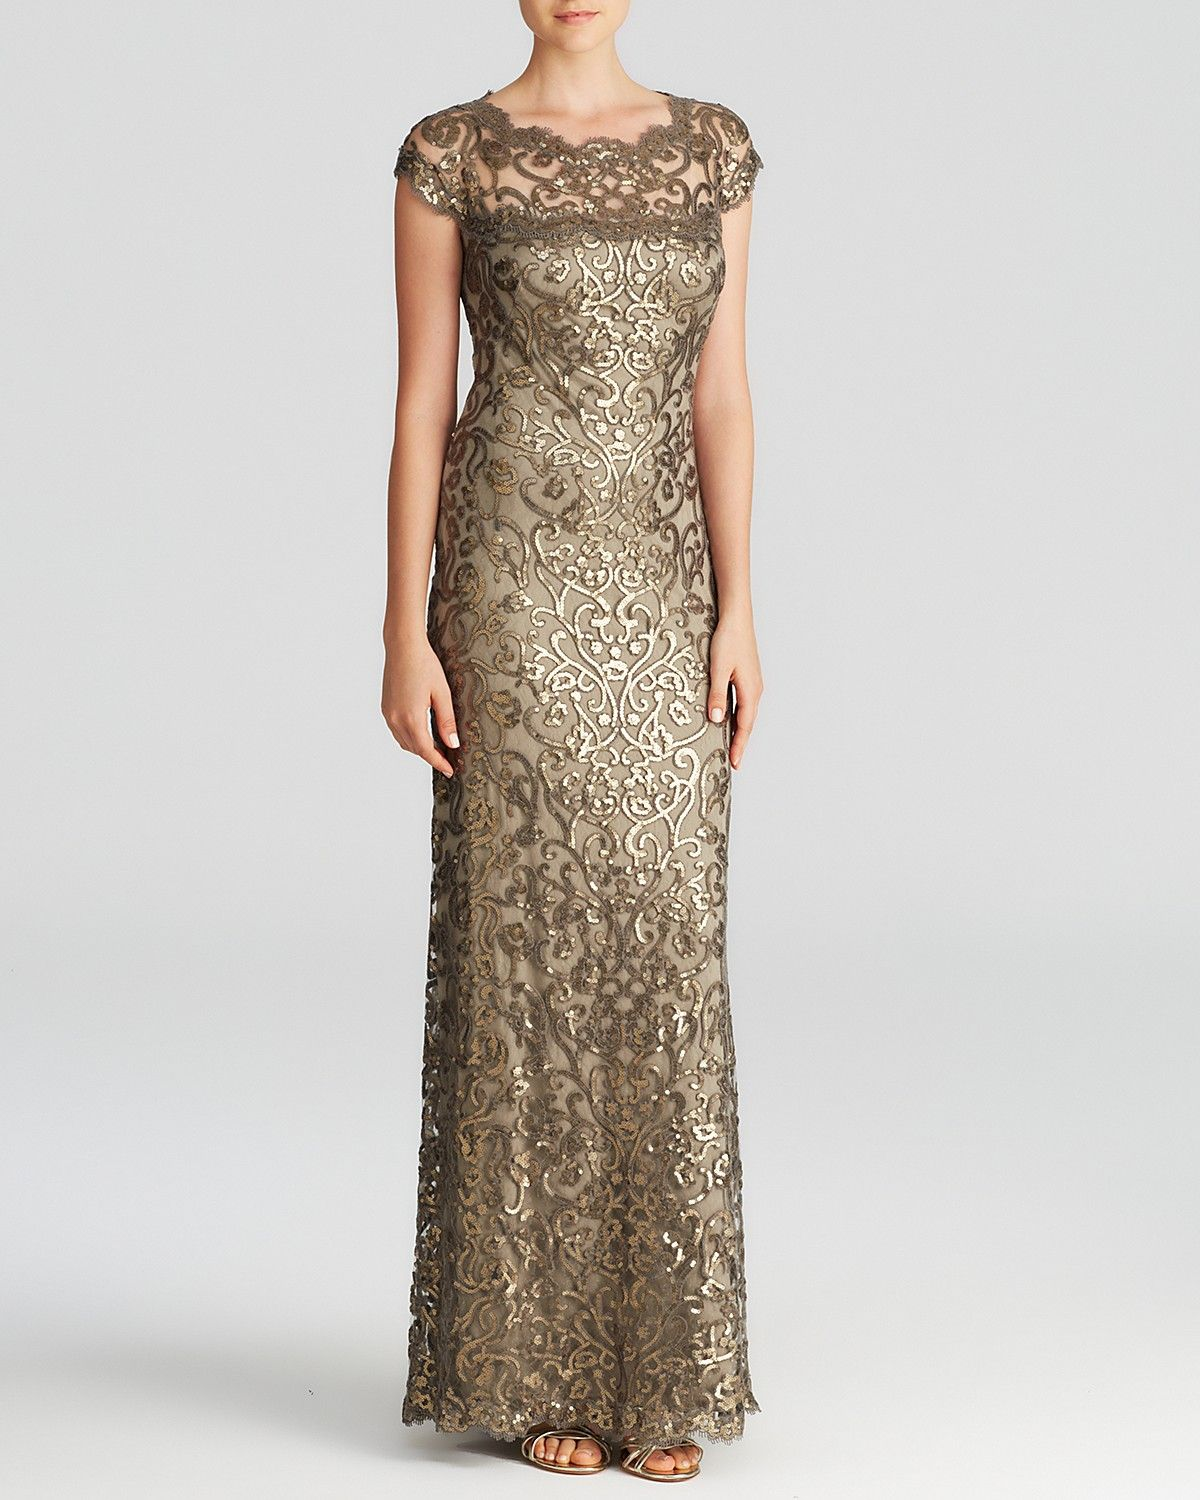 Tadashi Shoji Gown - Cap Sleeve Illusion Sequin | Bloomingdale's